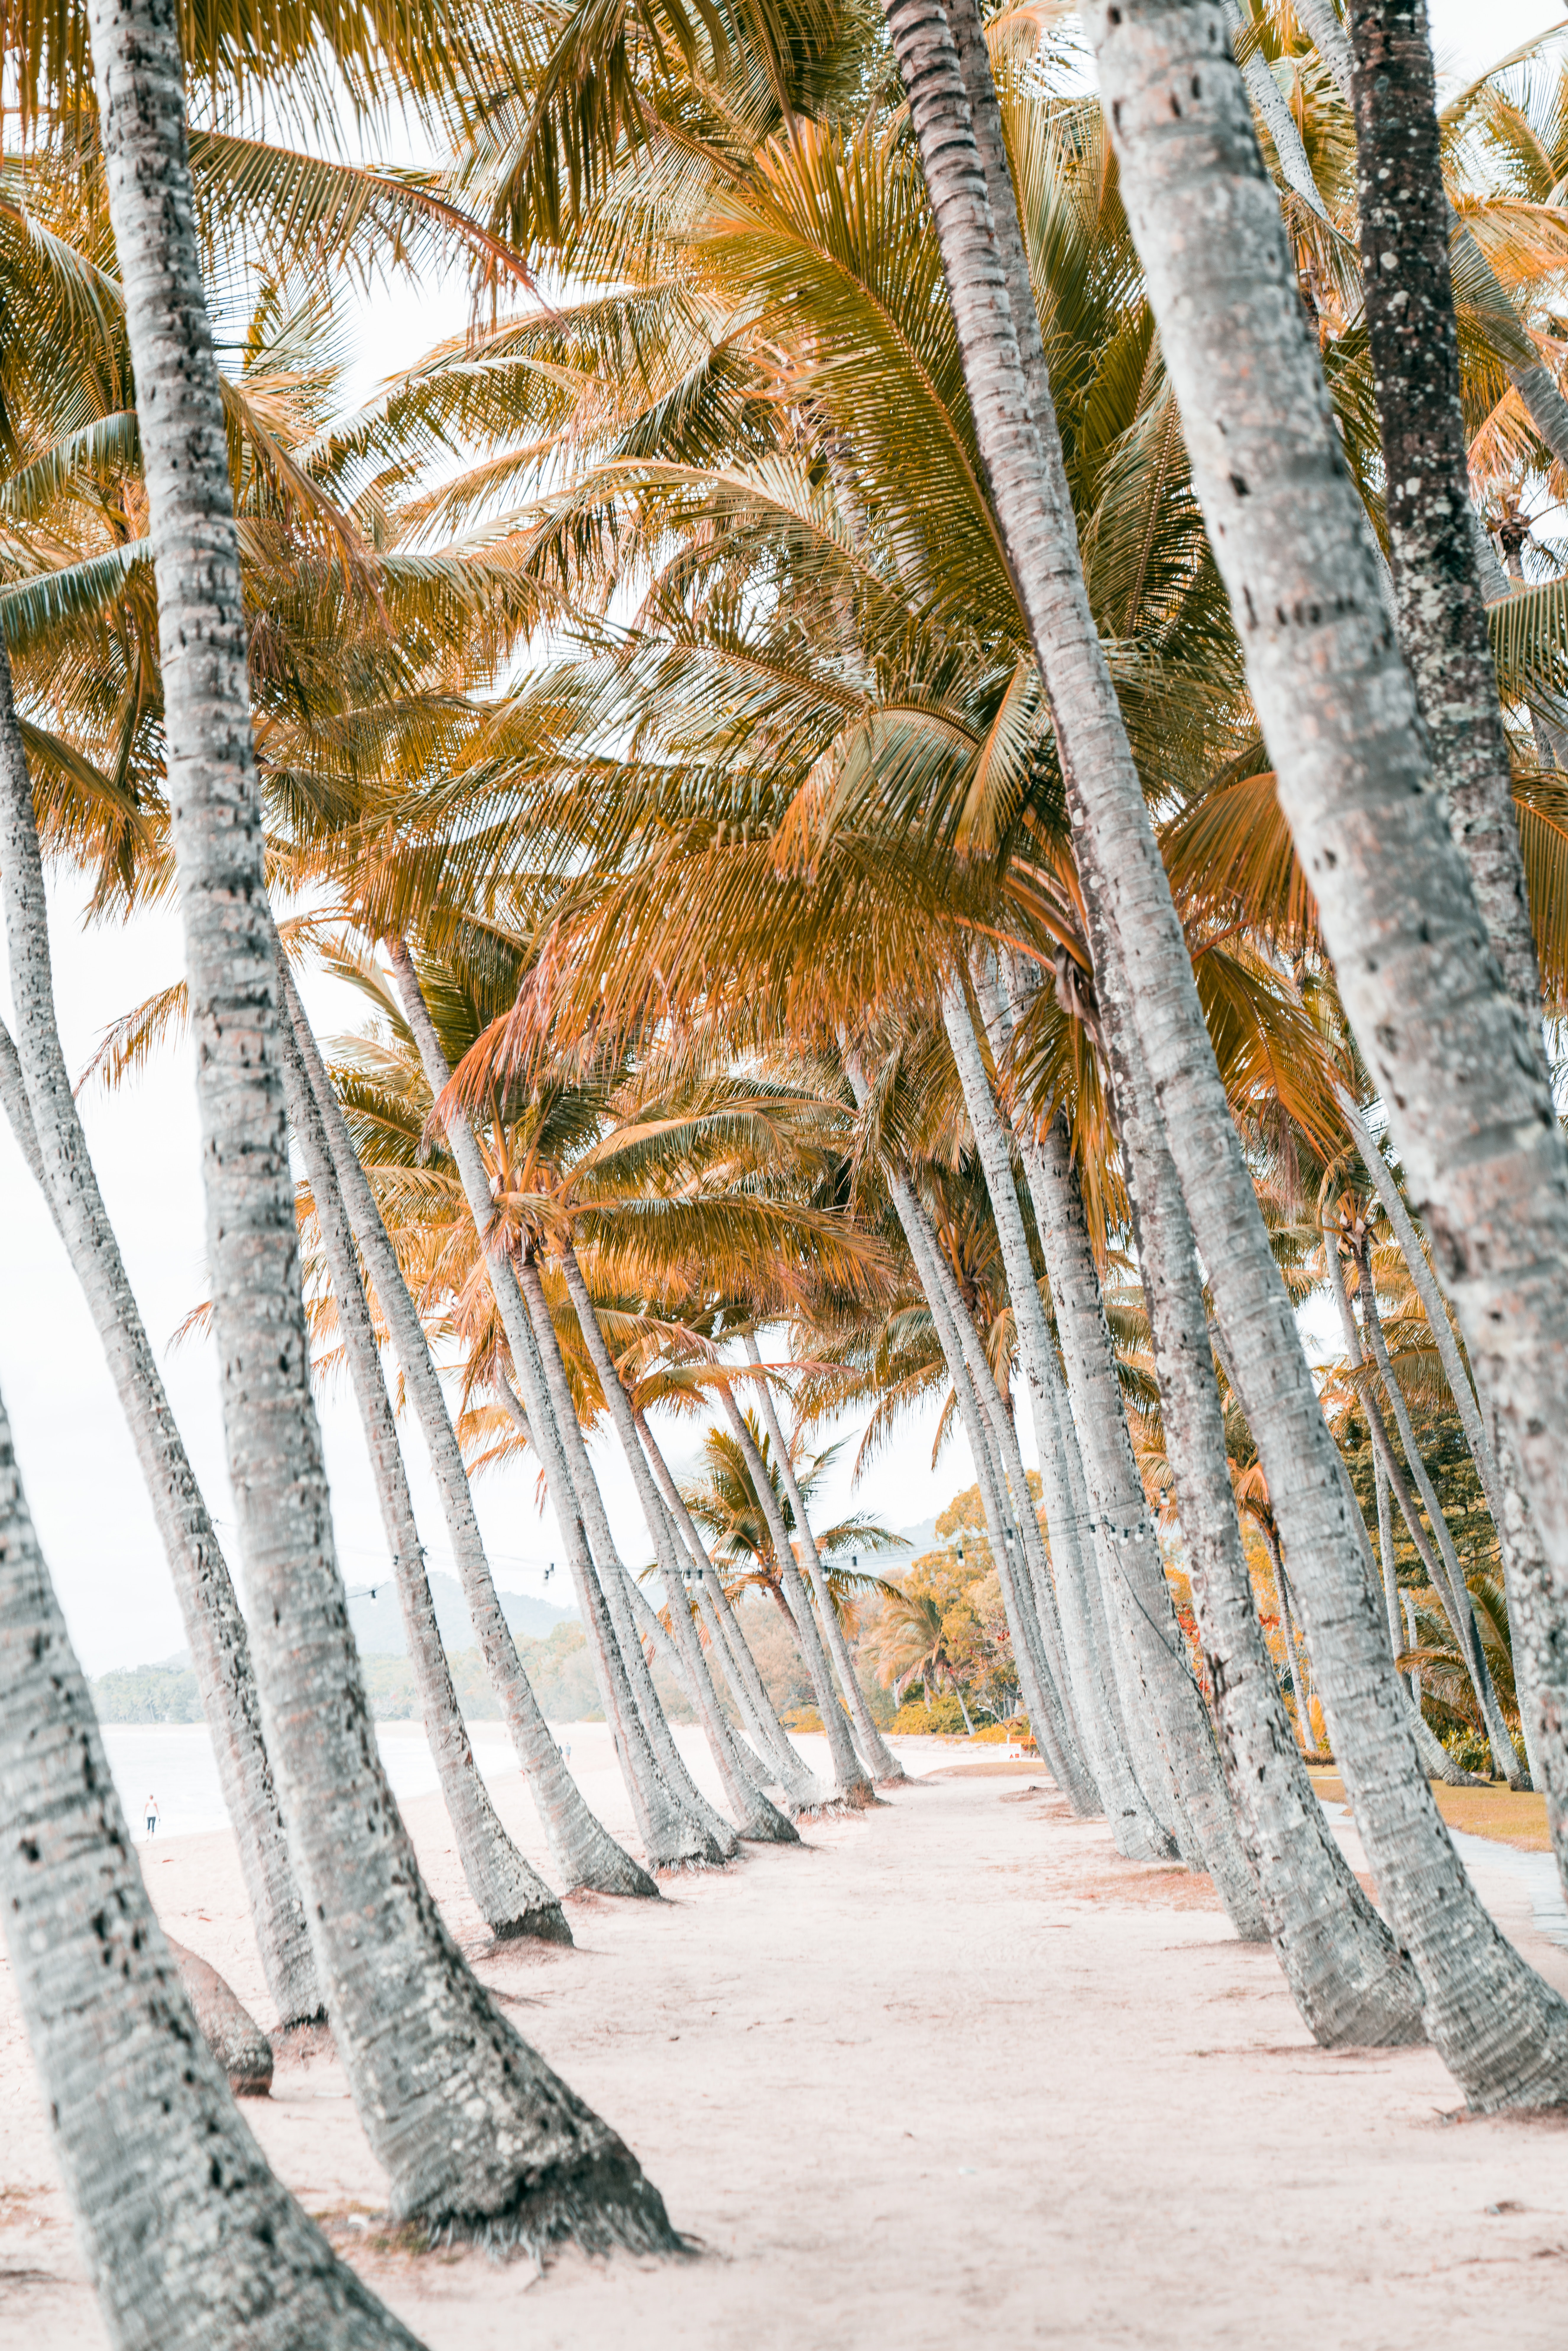 56085 download wallpaper Nature, Beach, Tropics, Trees, Sand, Palms screensavers and pictures for free